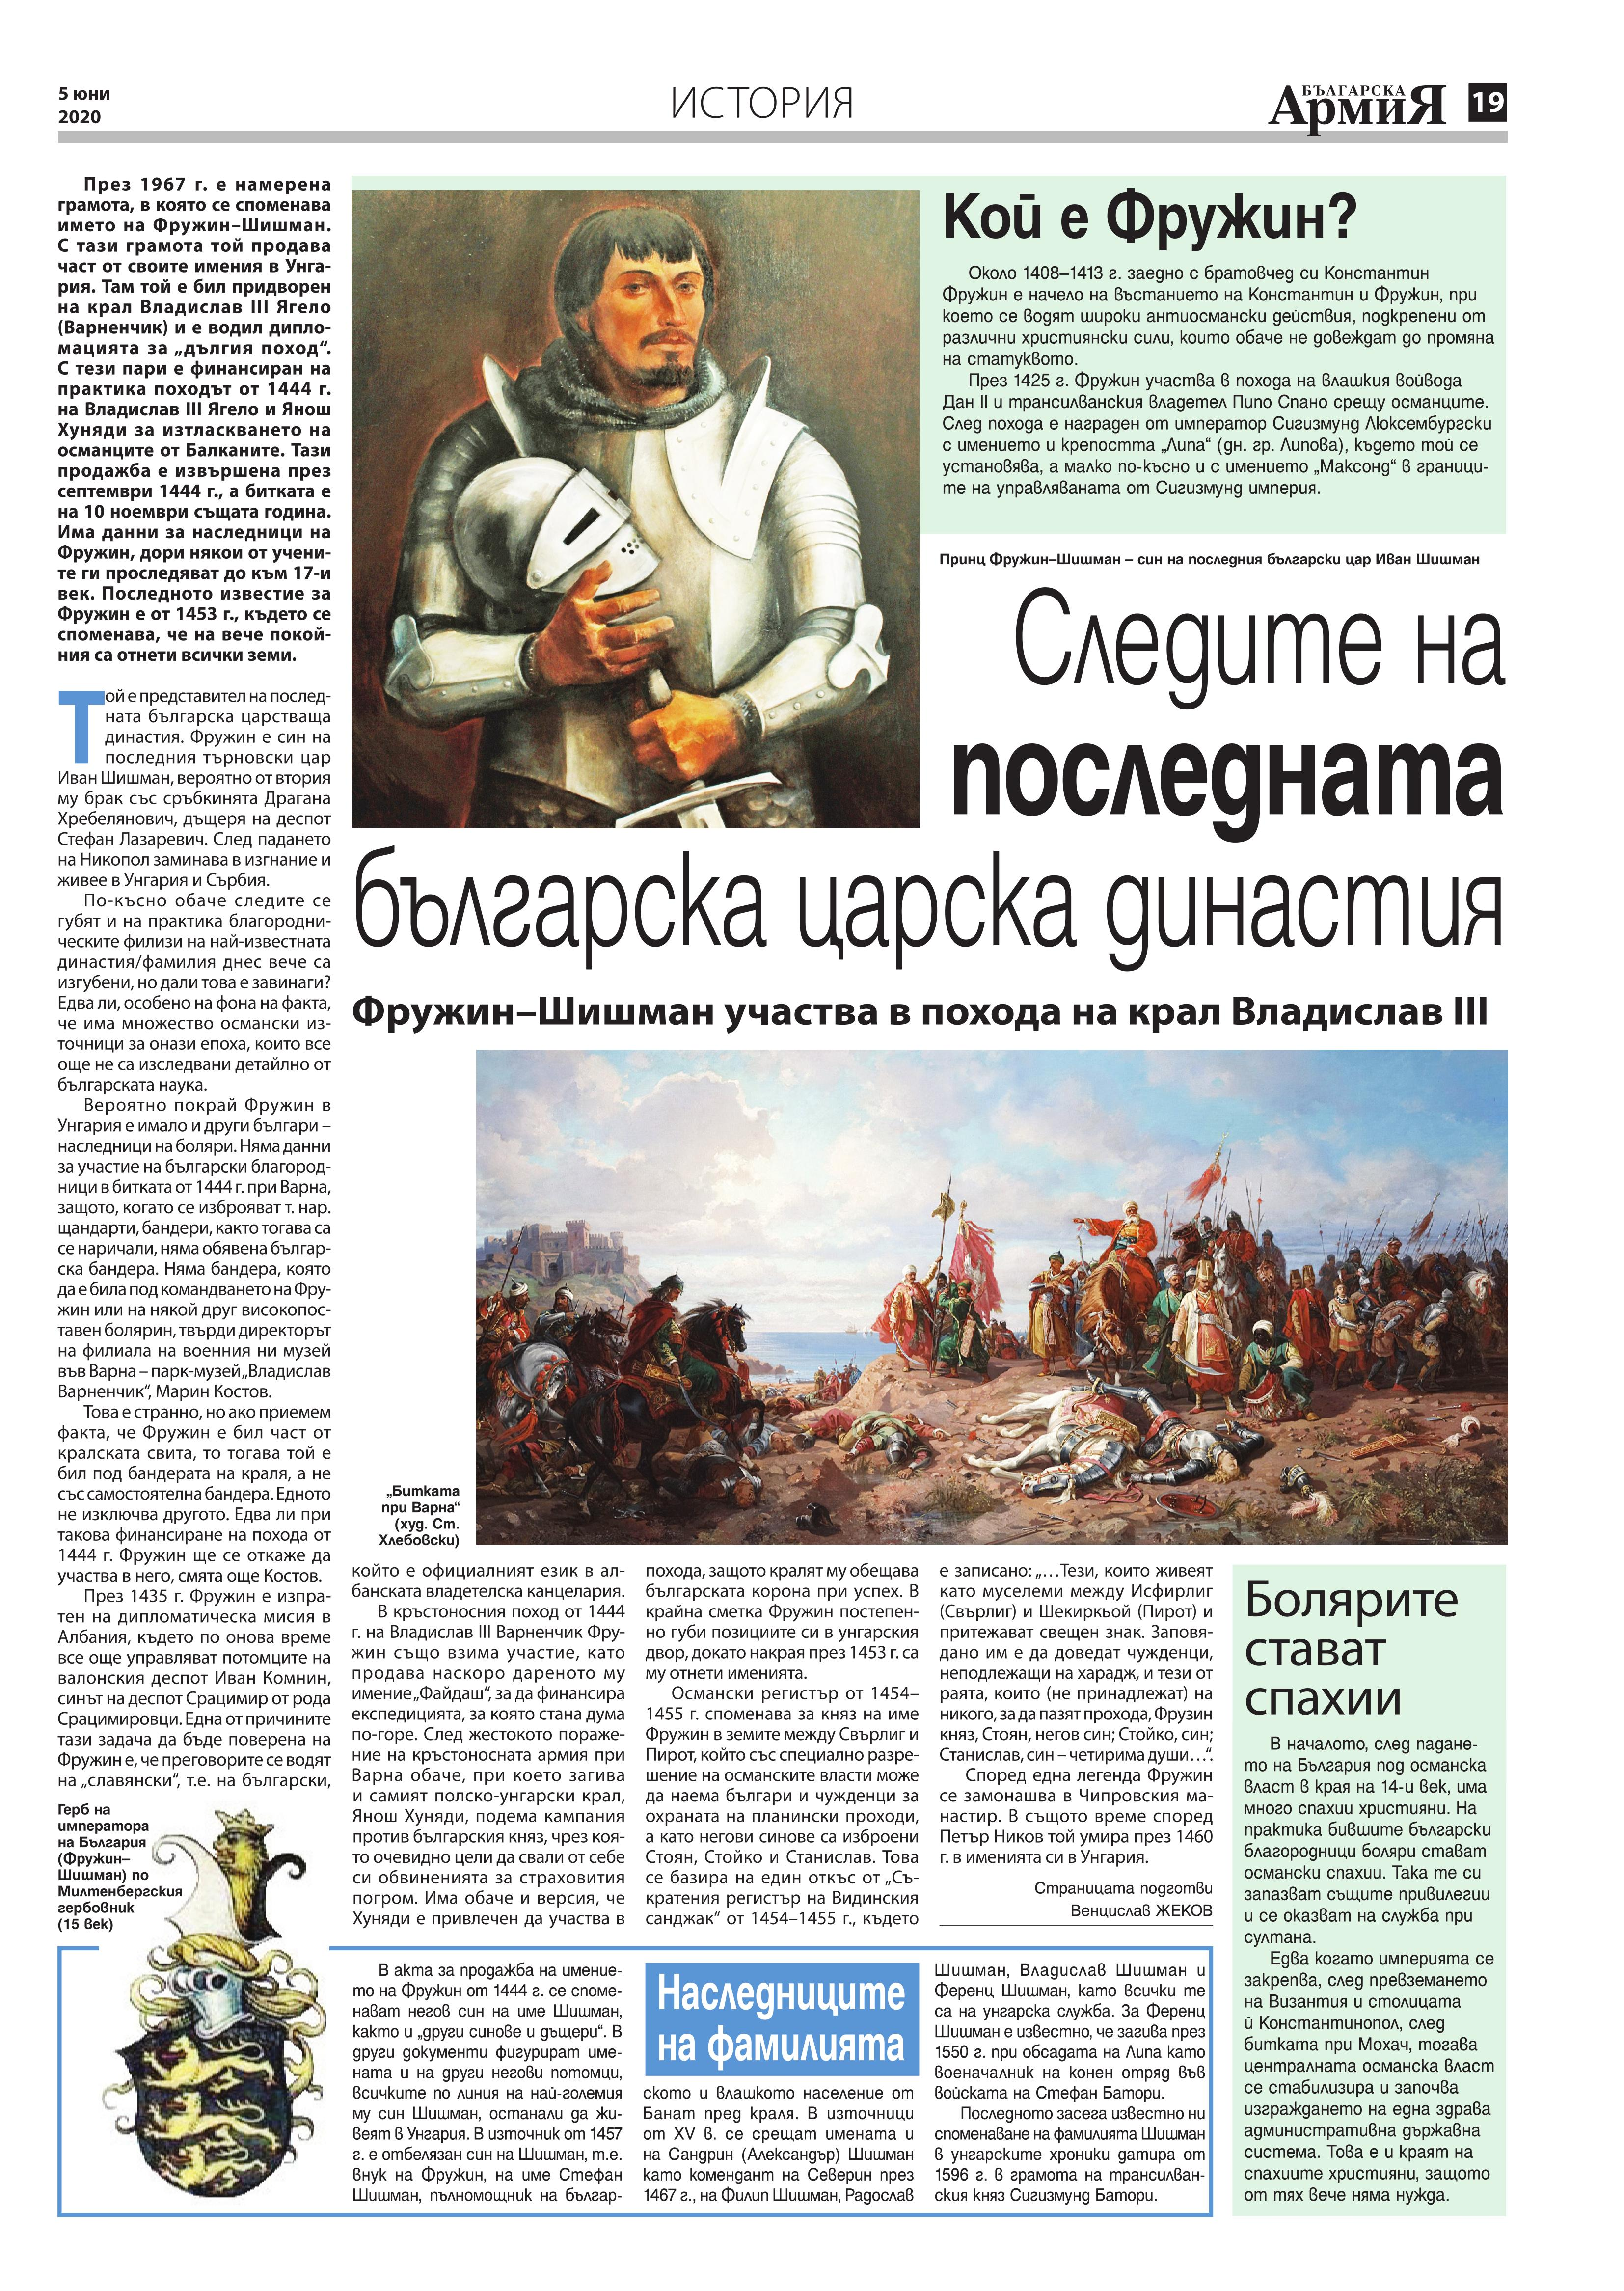 https://www.armymedia.bg/wp-content/uploads/2015/06/19.page1_-143.jpg